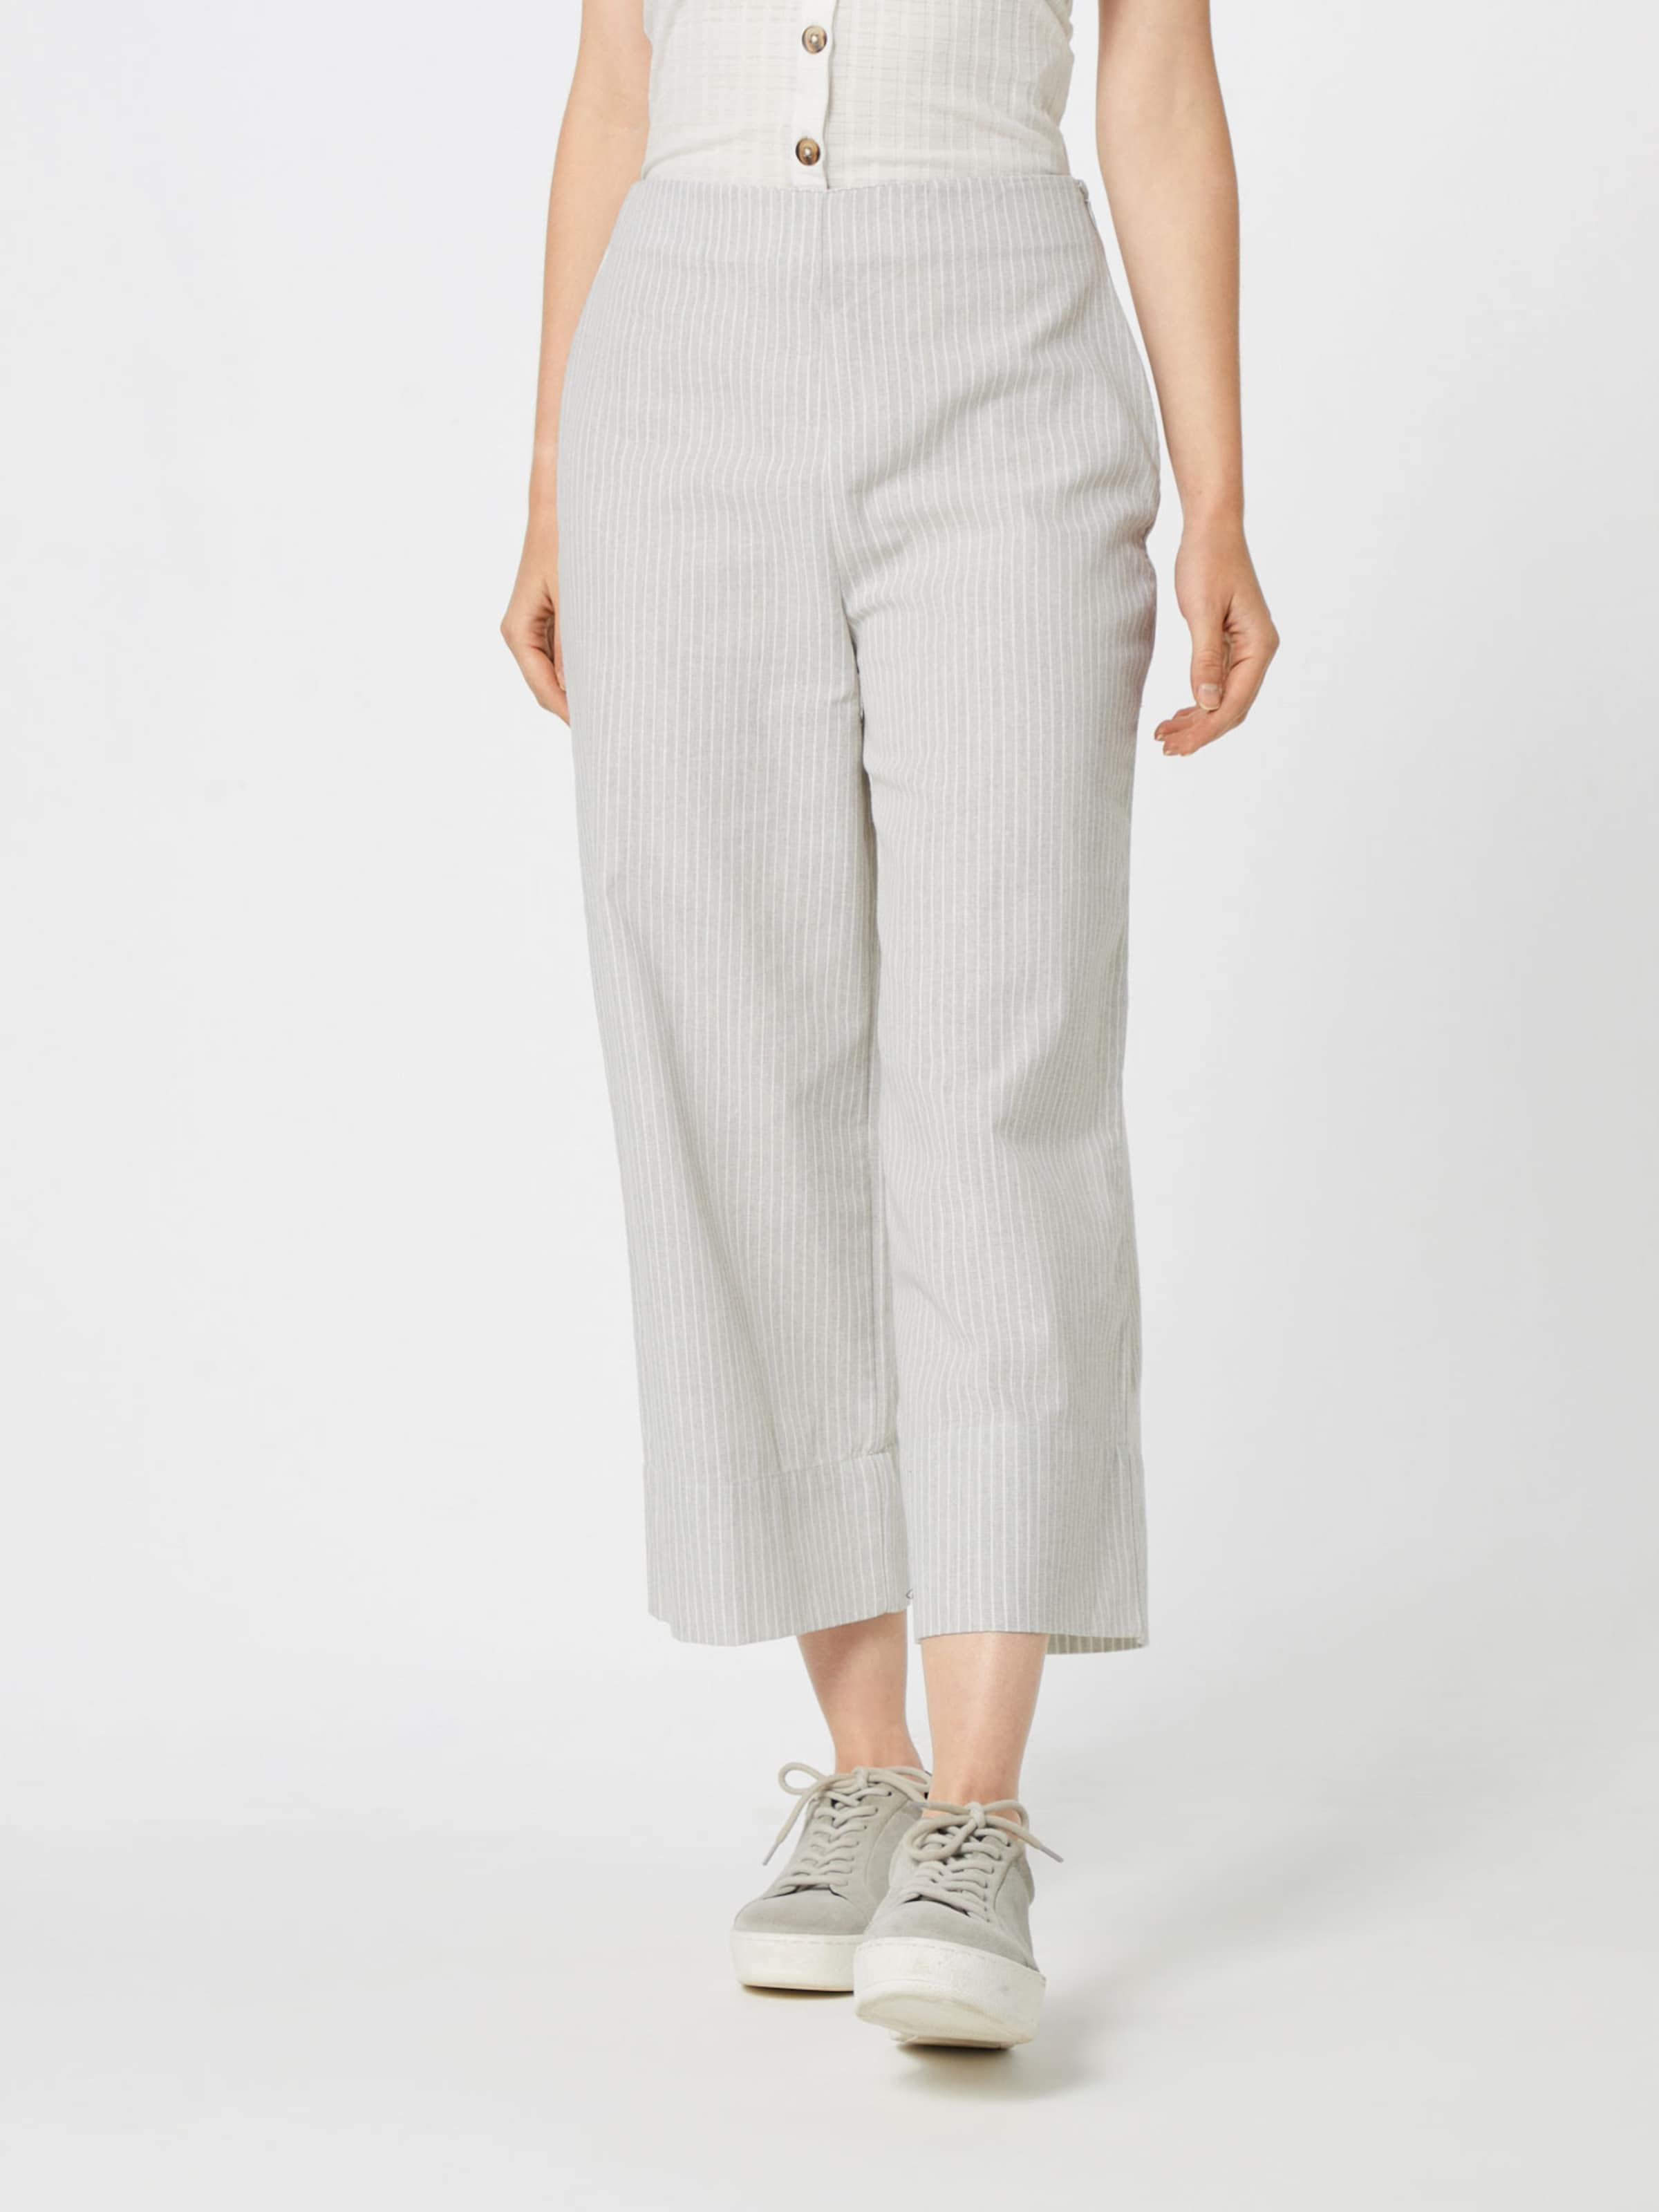 Pantalon Stripe' Clair Look 'gina New En Gris LVUqSMpzG